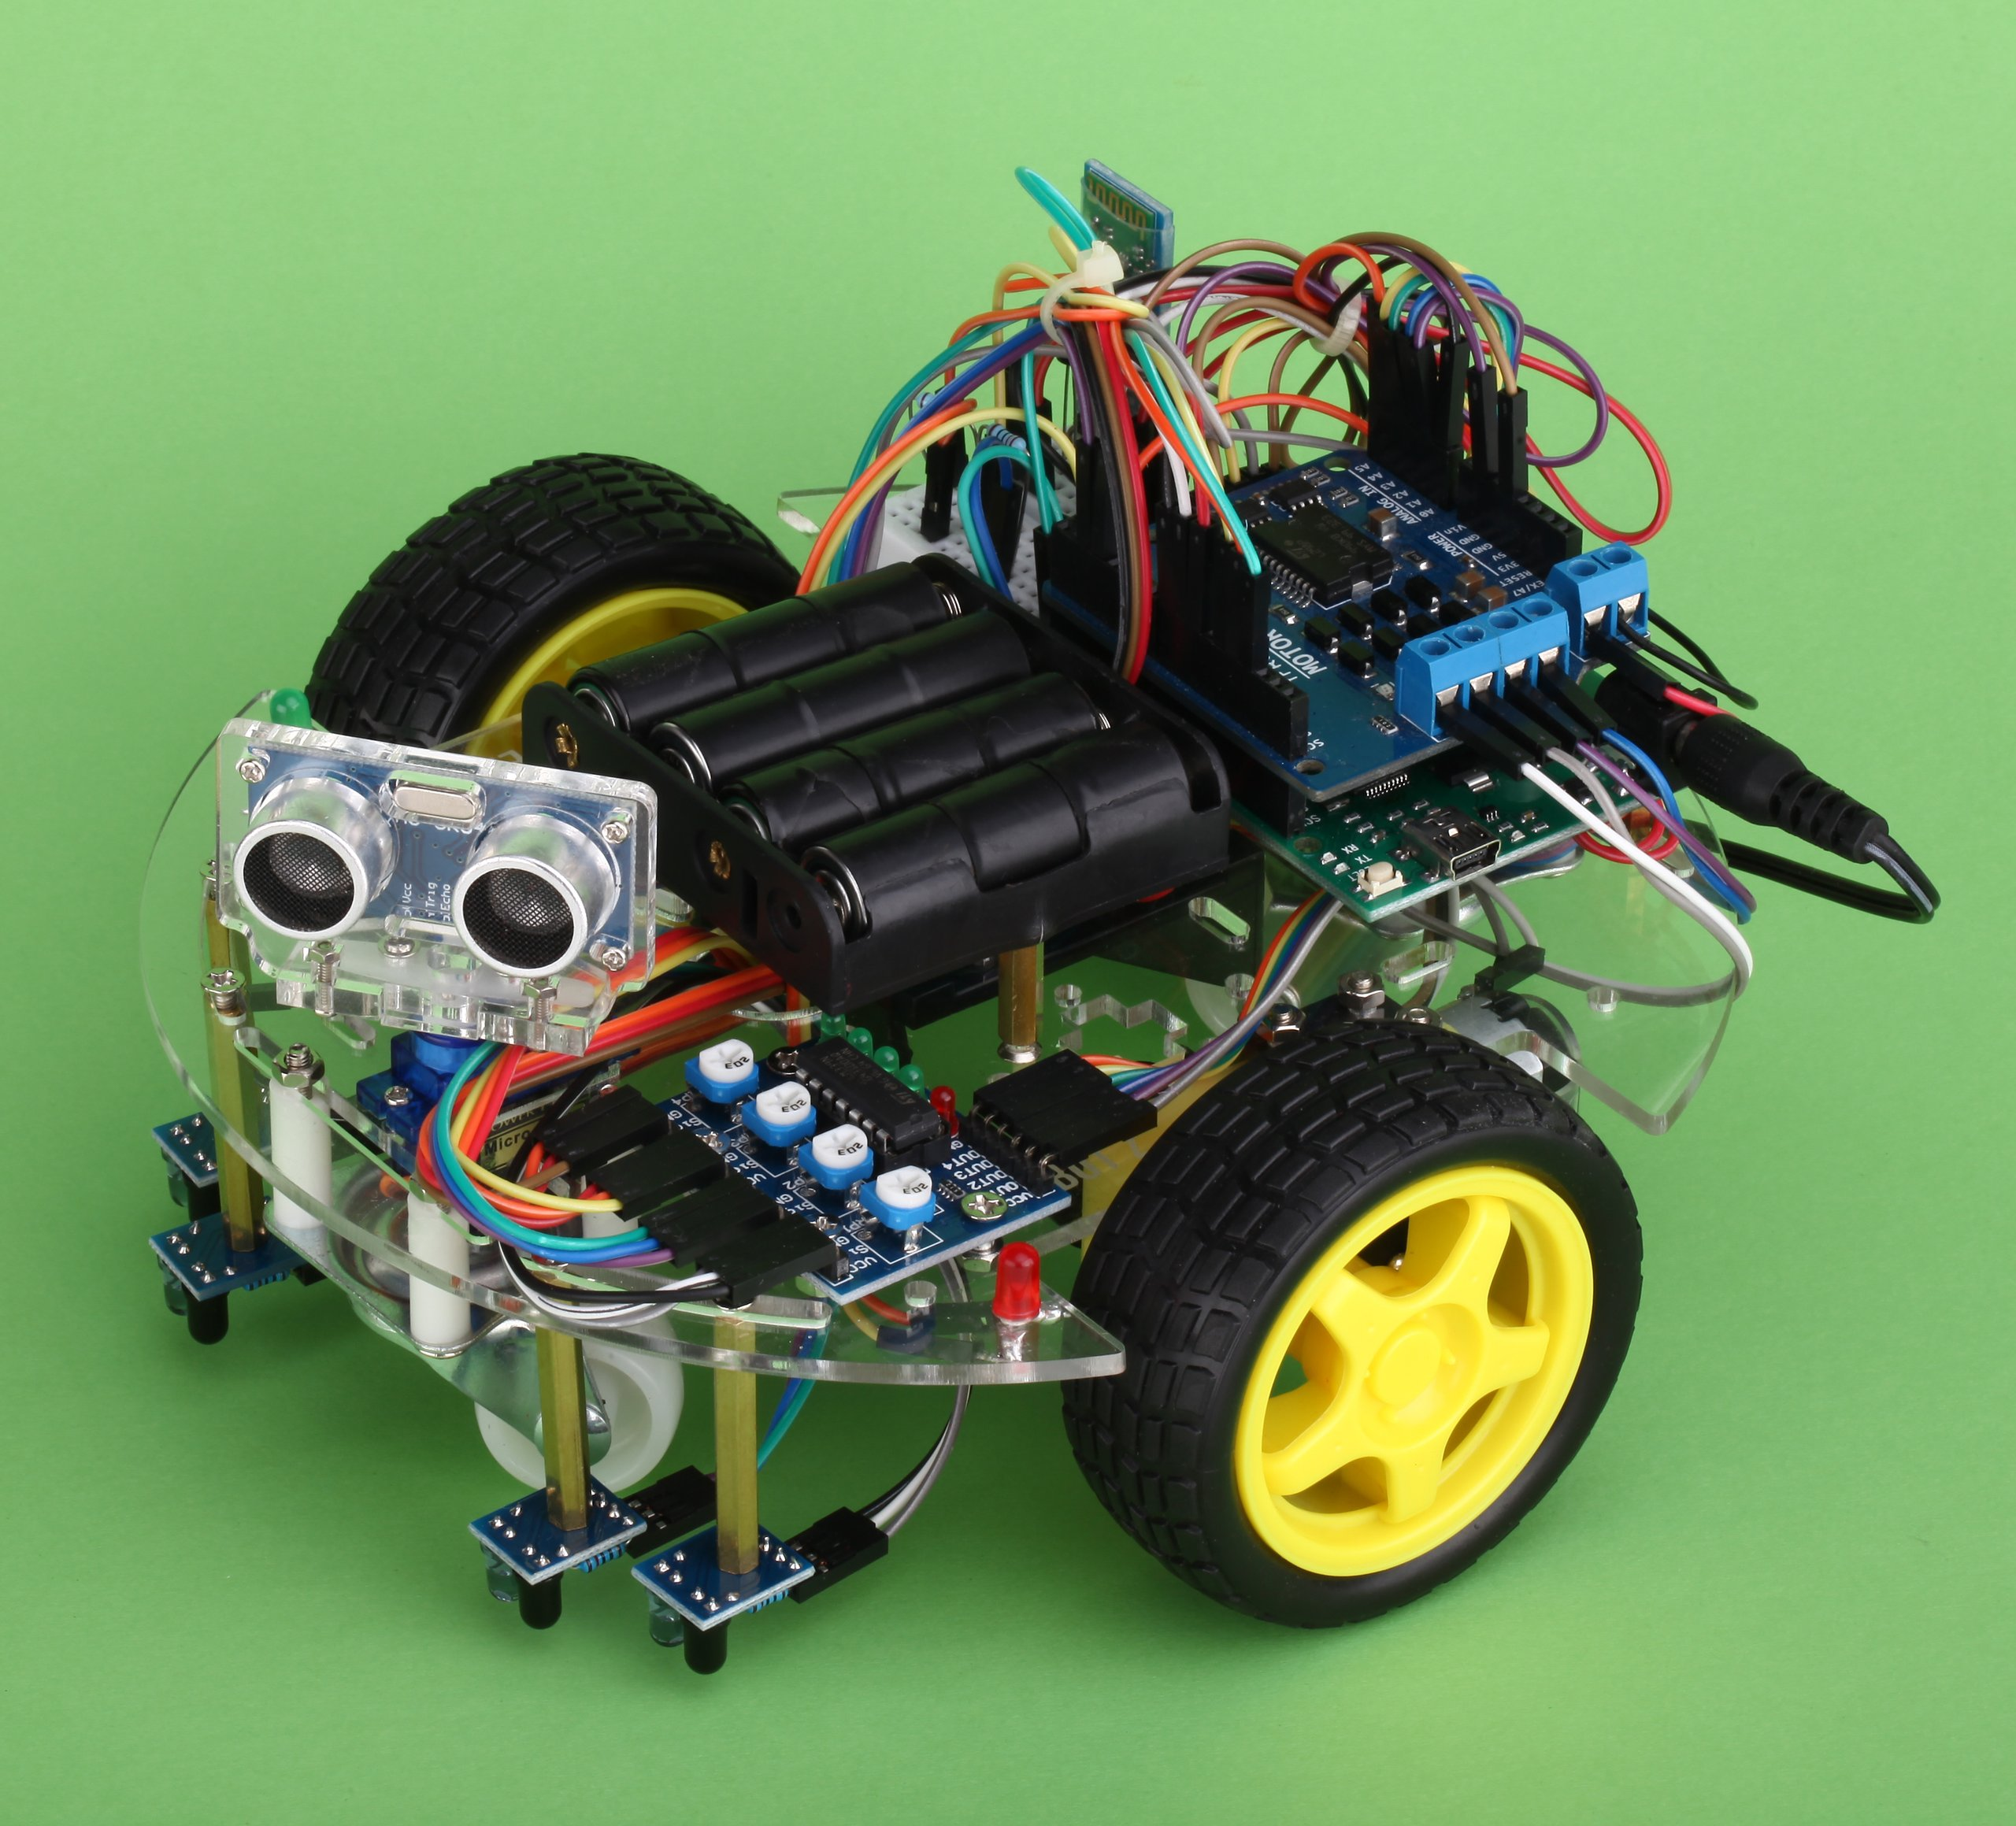 Helicopter Spare Parts - Lowest Price for Arduino/RC